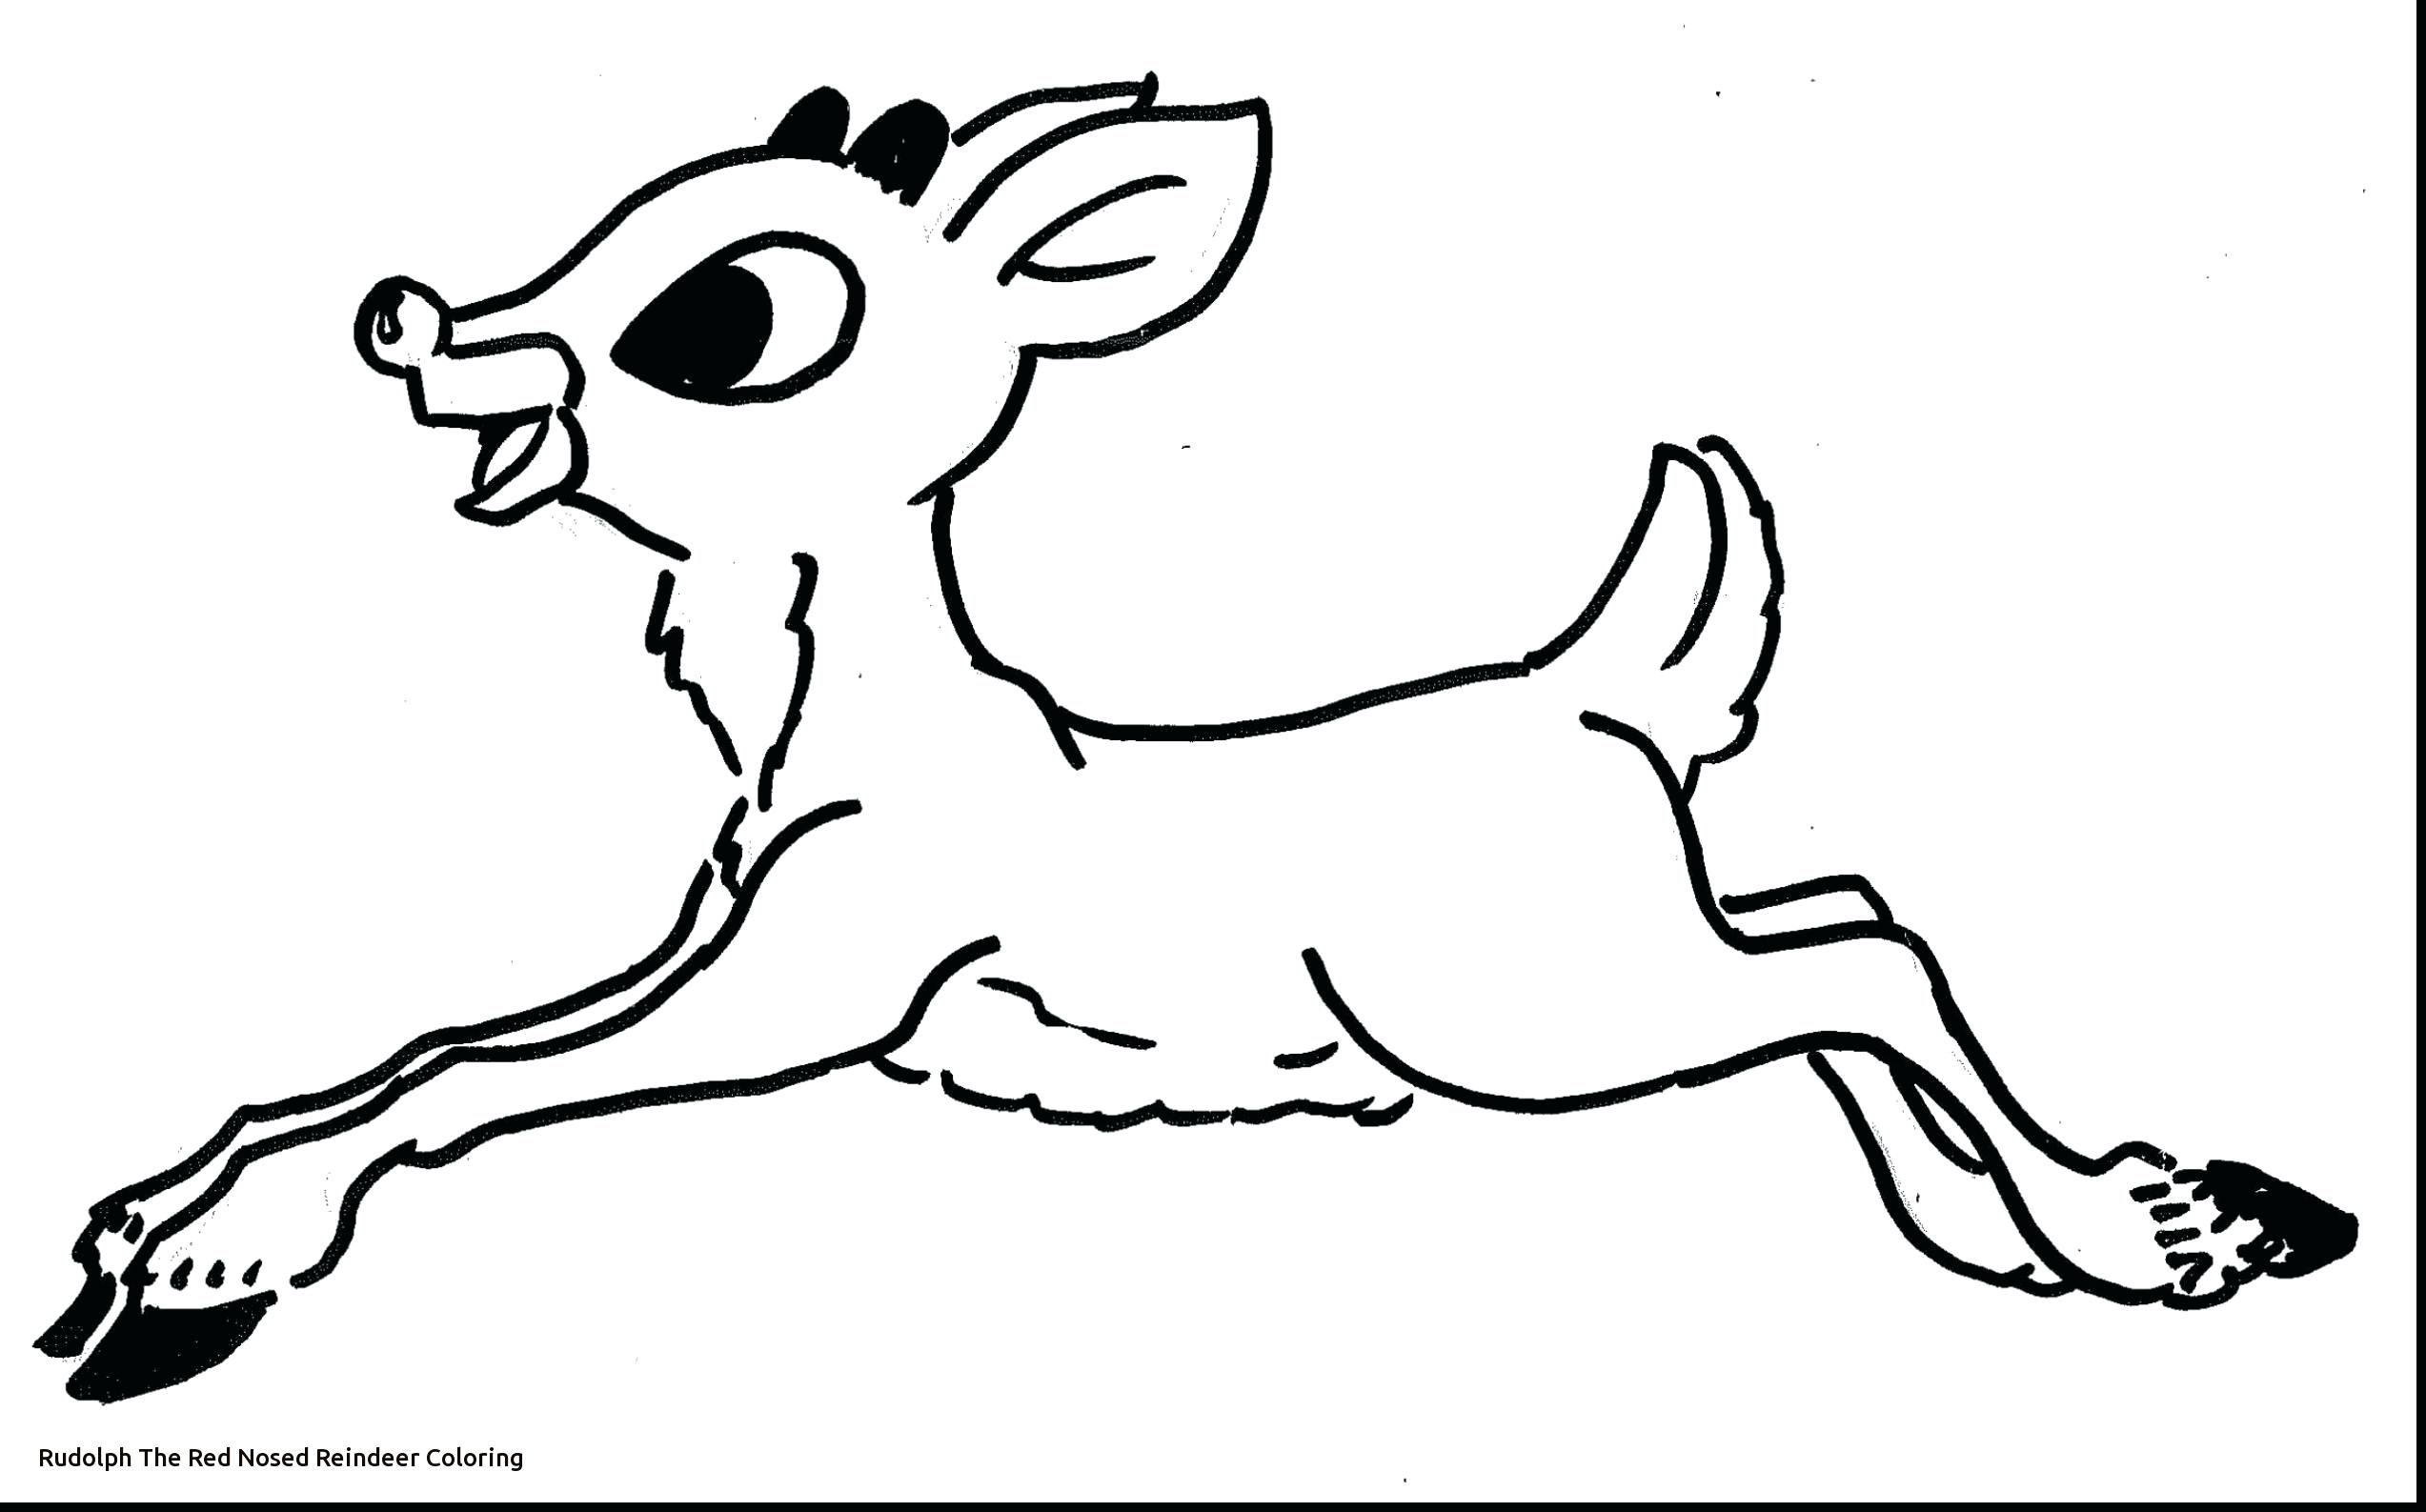 Santa Rudolph Coloring Pages With Reindeer Page And The Red Nosed Printable Best Of